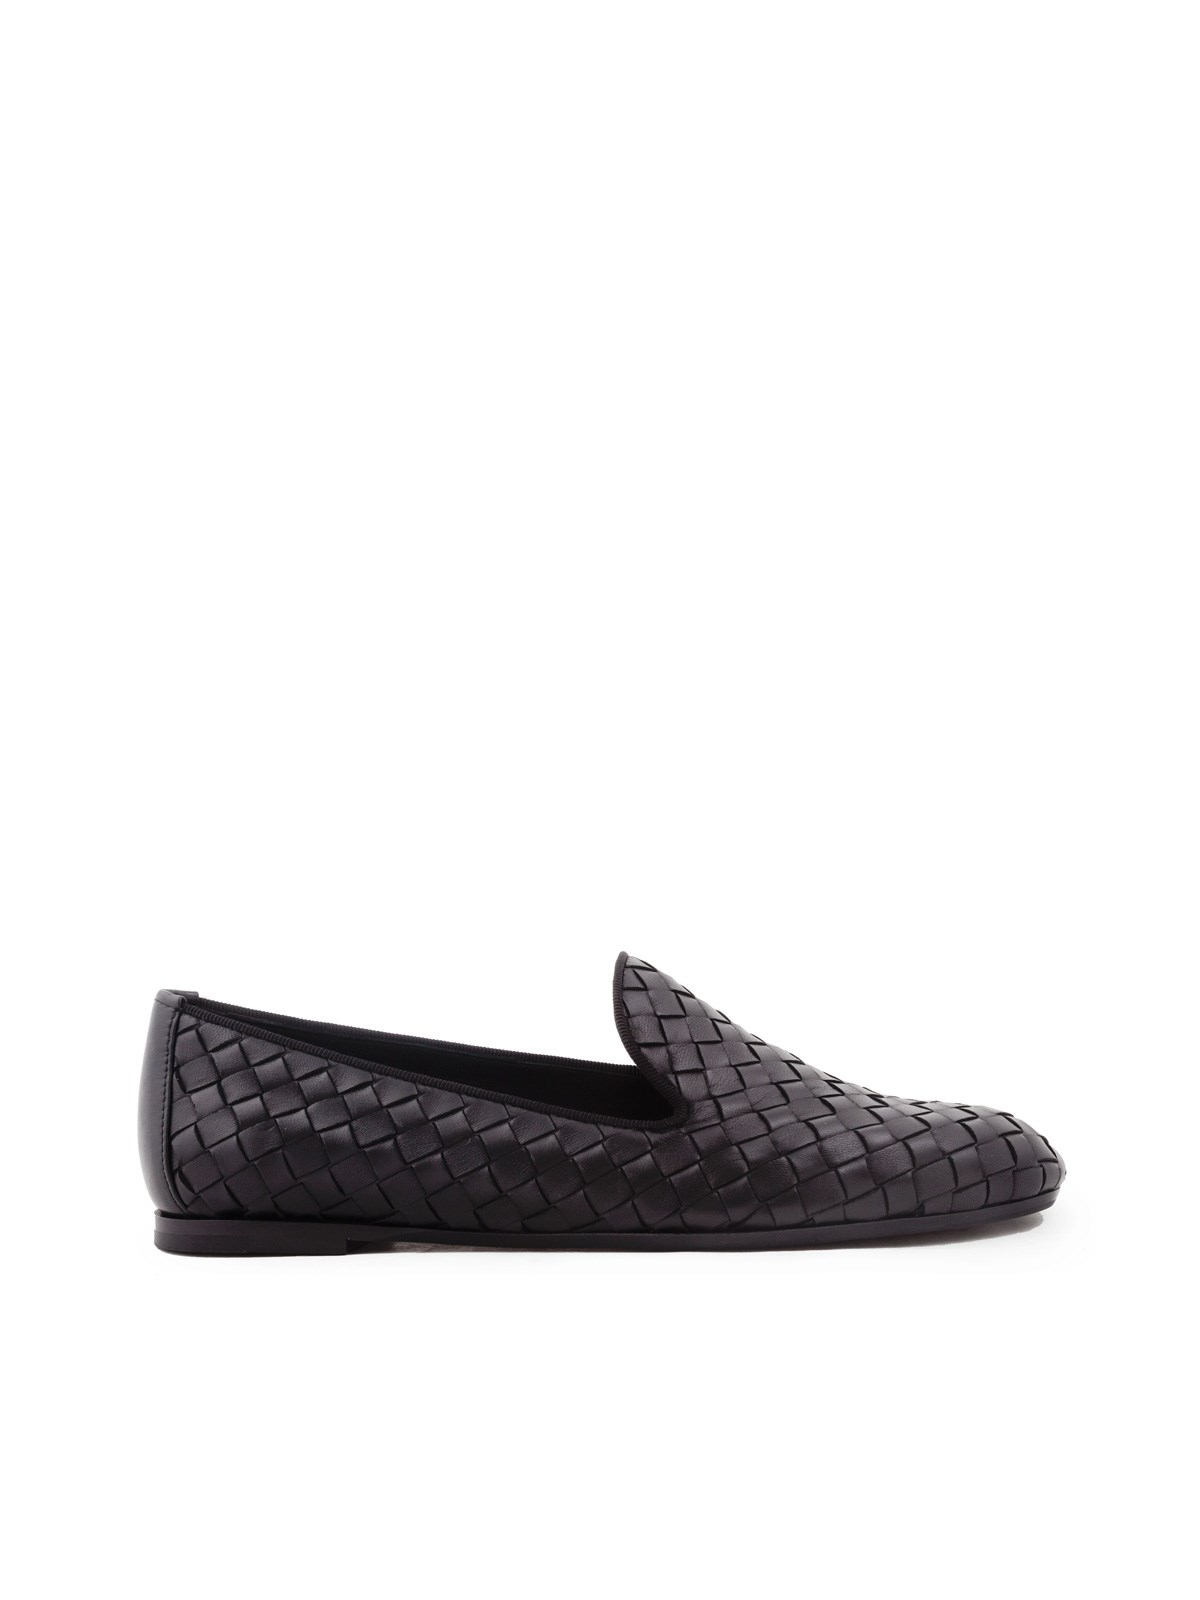 8a972980d7a2 bottega veneta LOAFERS available on montiboutique.com - 21055